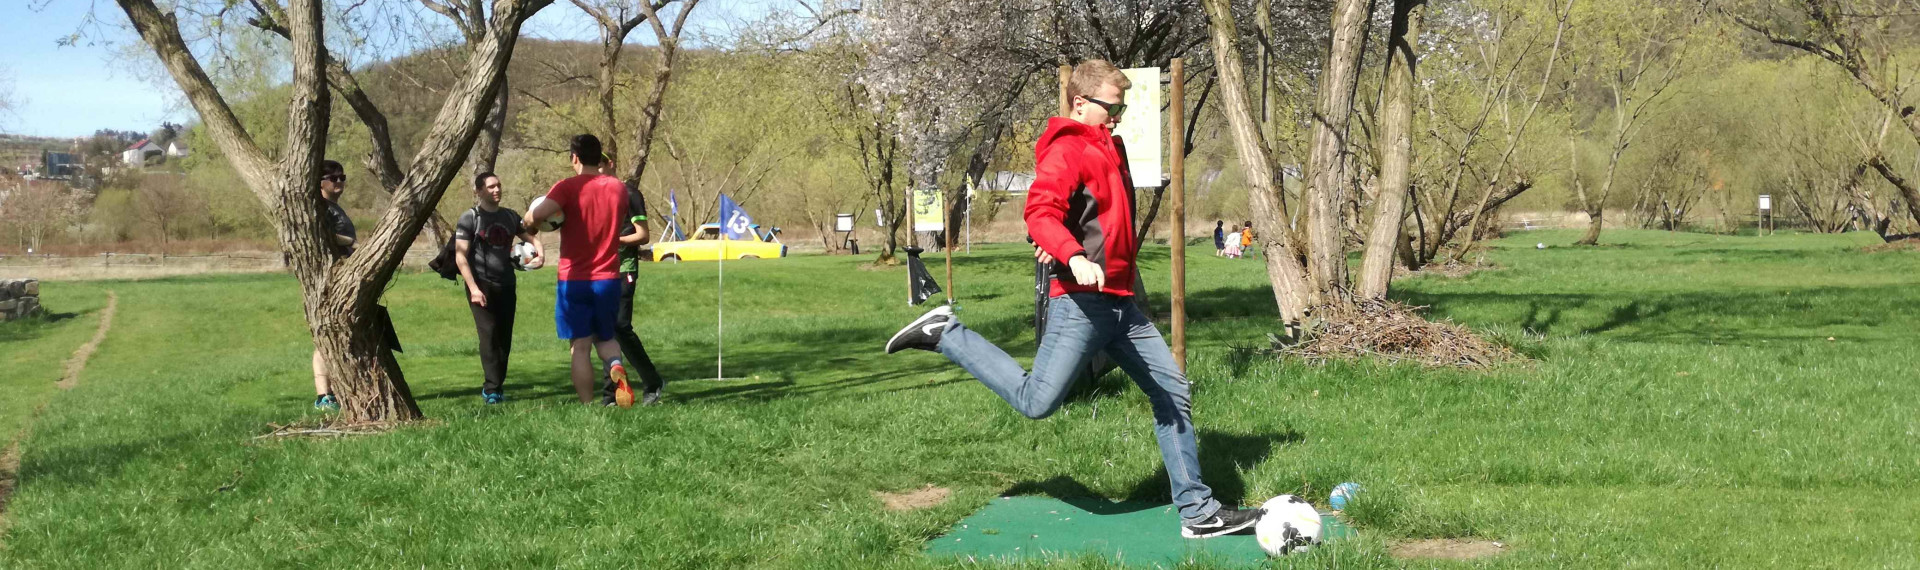 Footgolf Prague | Pissup | Stag Experts since 2001